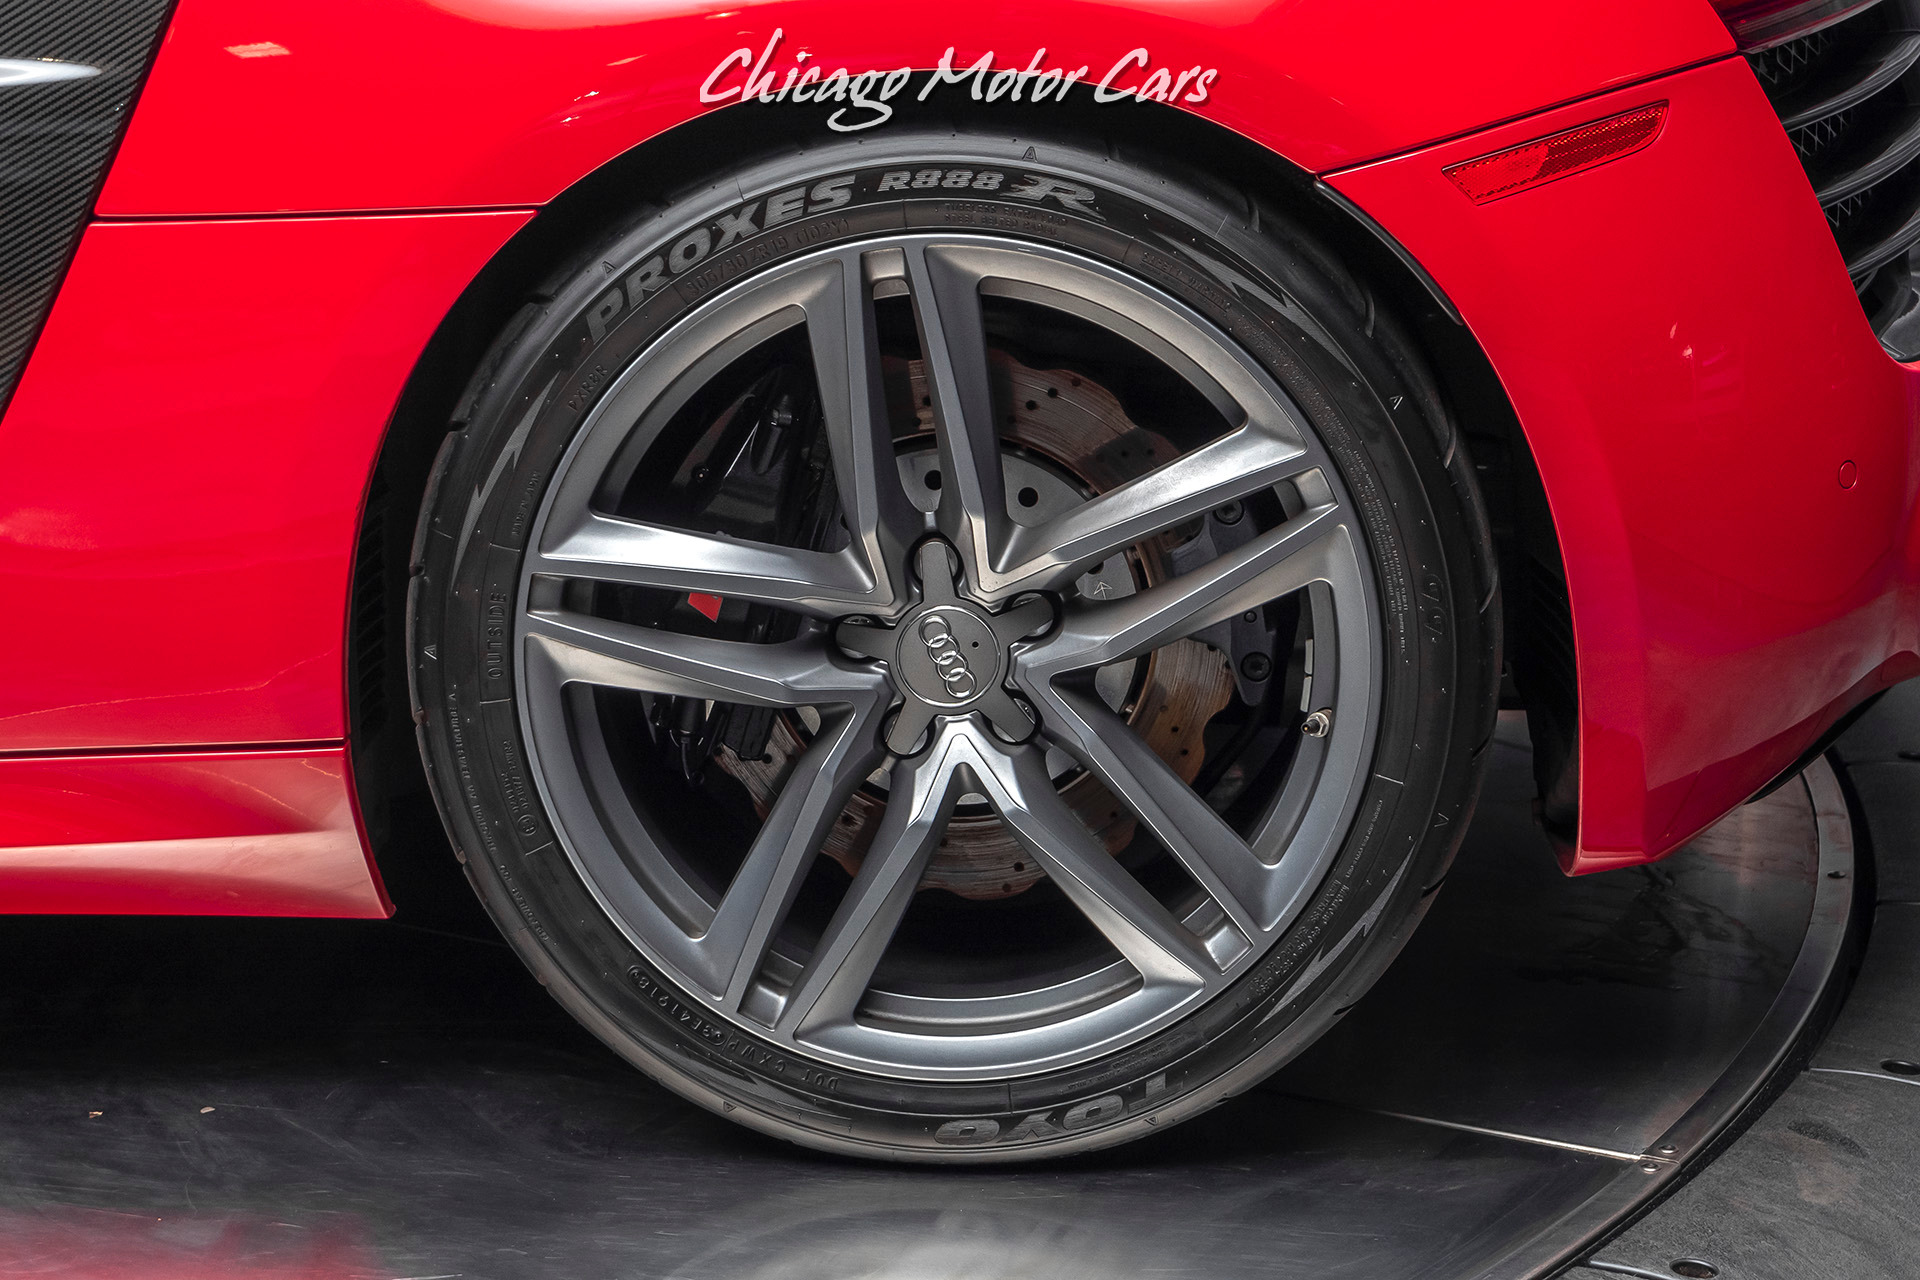 Used-2015-Audi-R8-52-quattro-QUICKSILVER-Exhaust-Ceramic-Coated-Serviced-Only-9k-Miles